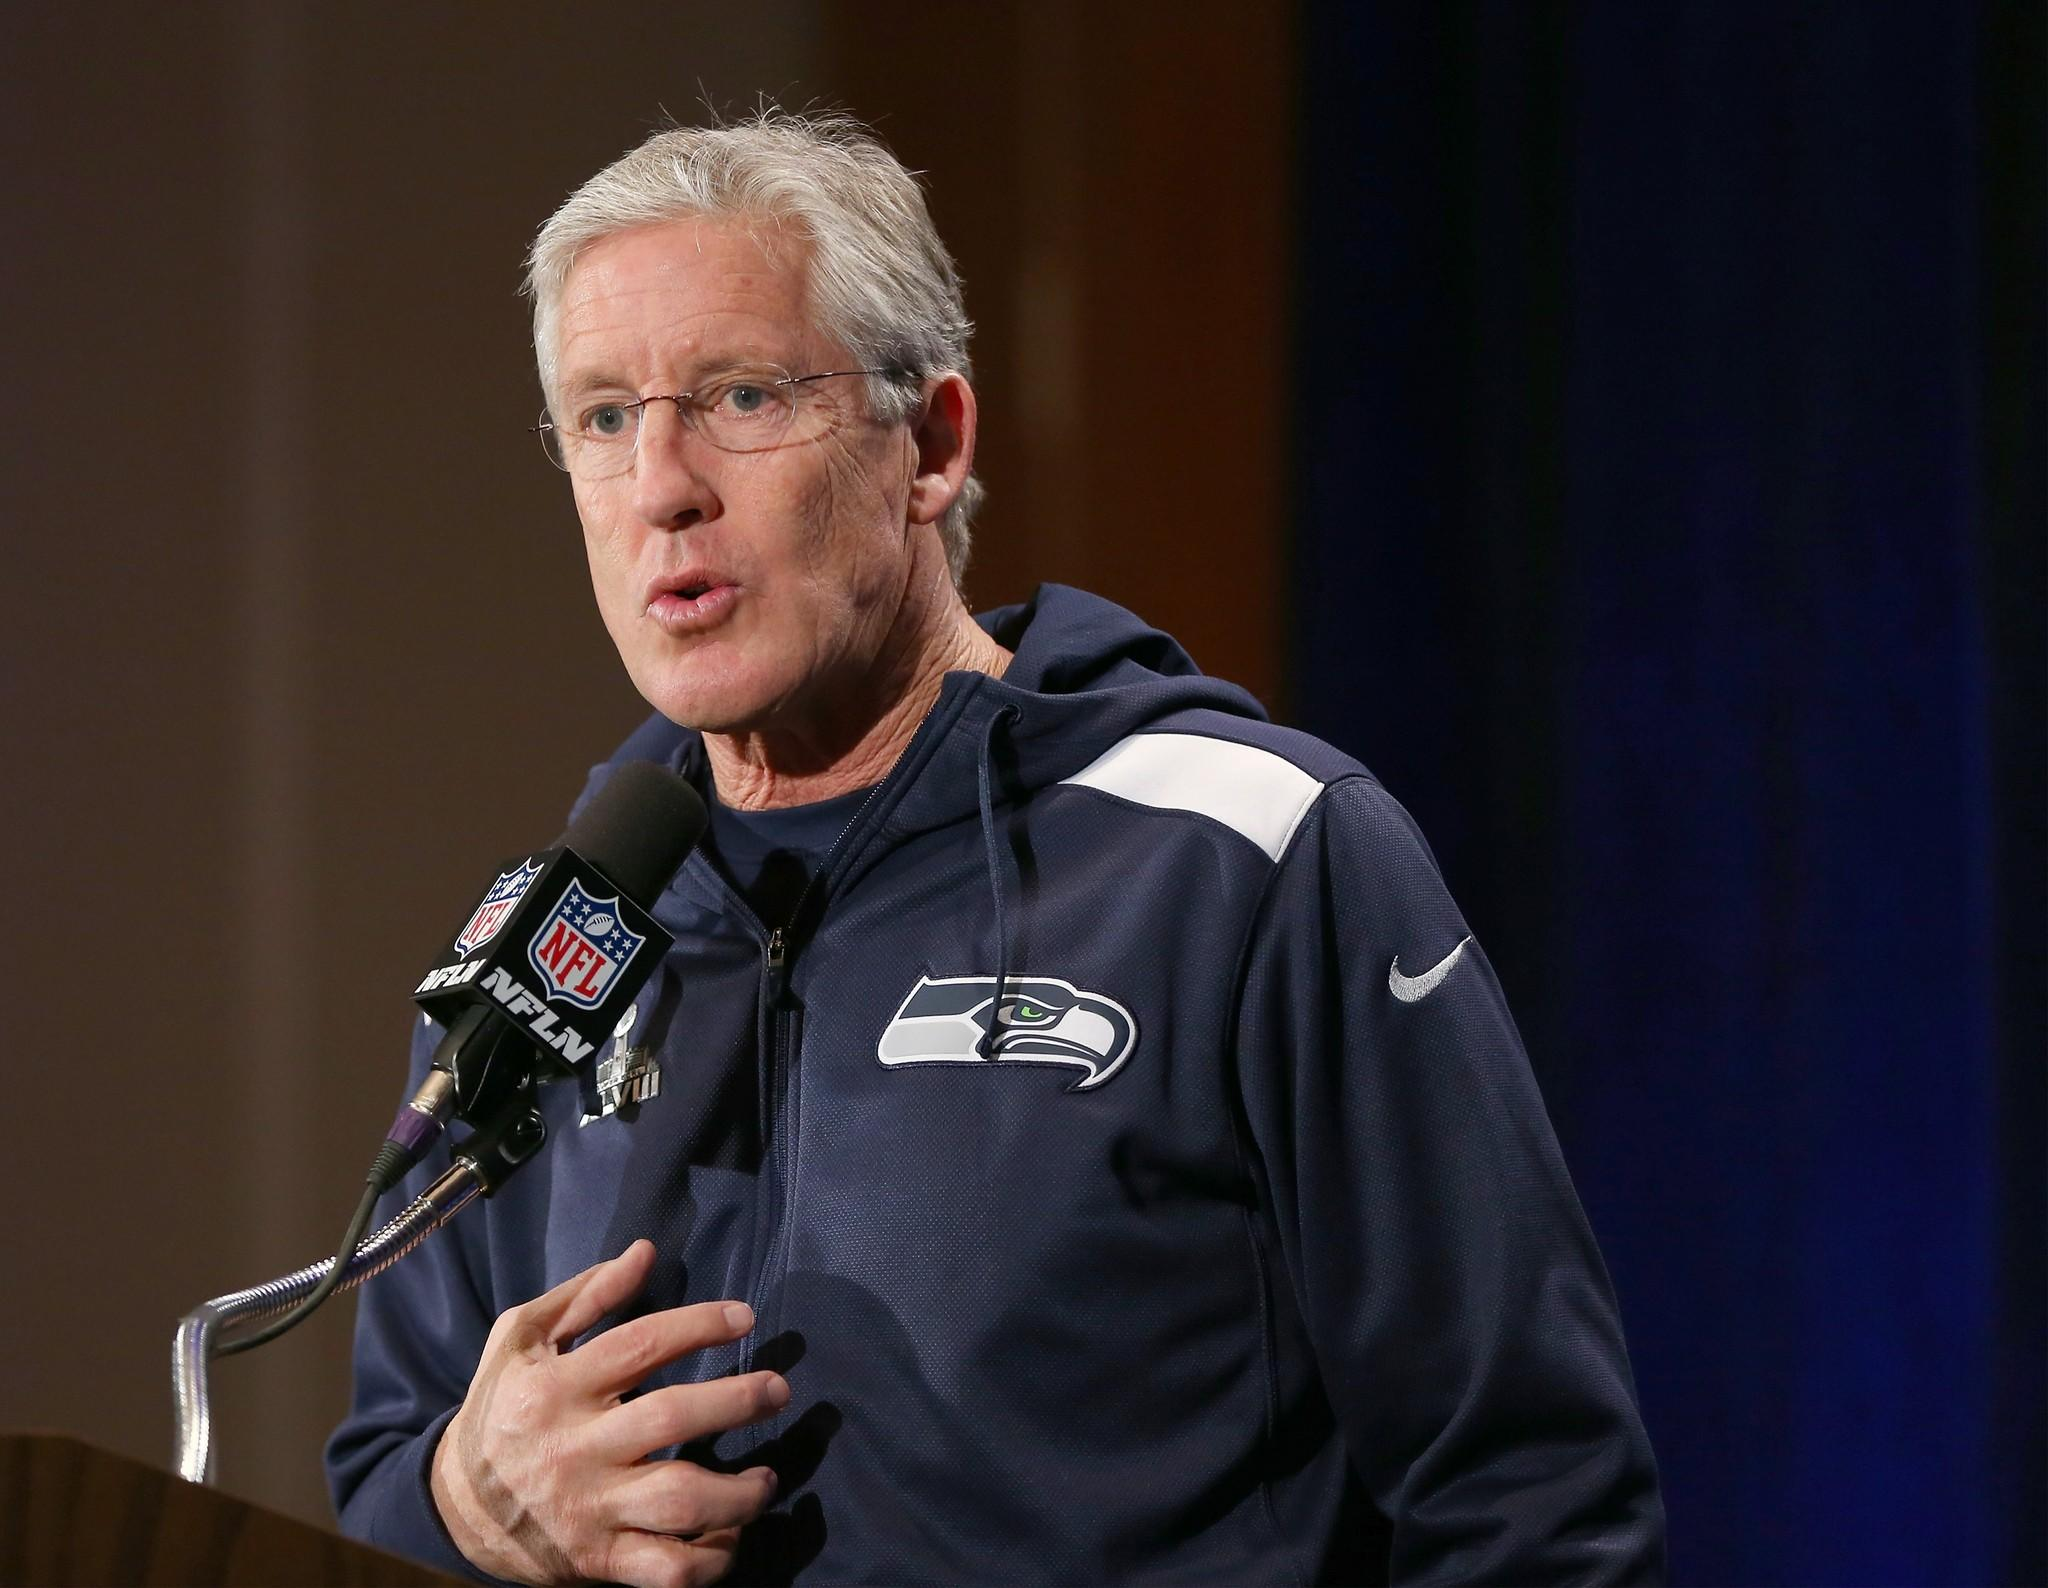 Seattle Seahawks coach Pete Carroll addresses the media during Super Bowl XLVIII media availability at the Westin Hotel.